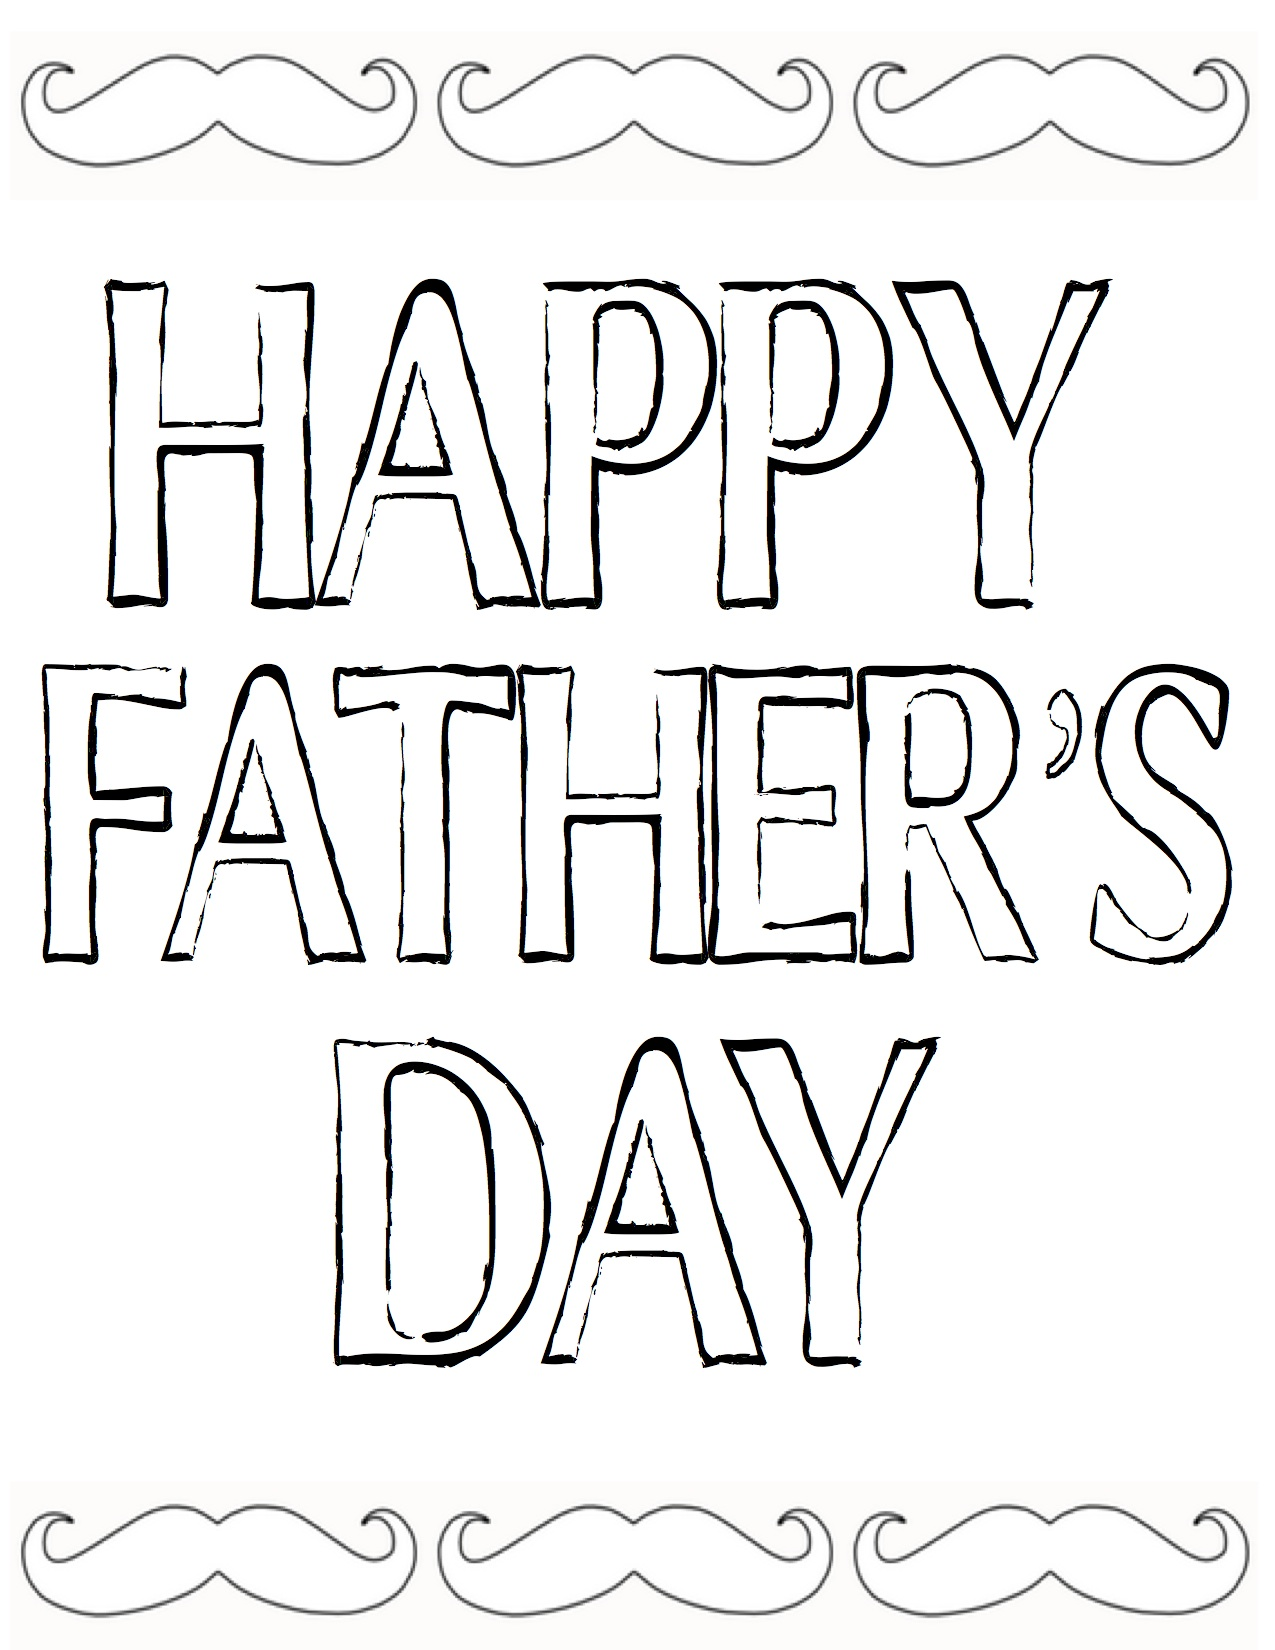 6 Images of Father's Day Printables